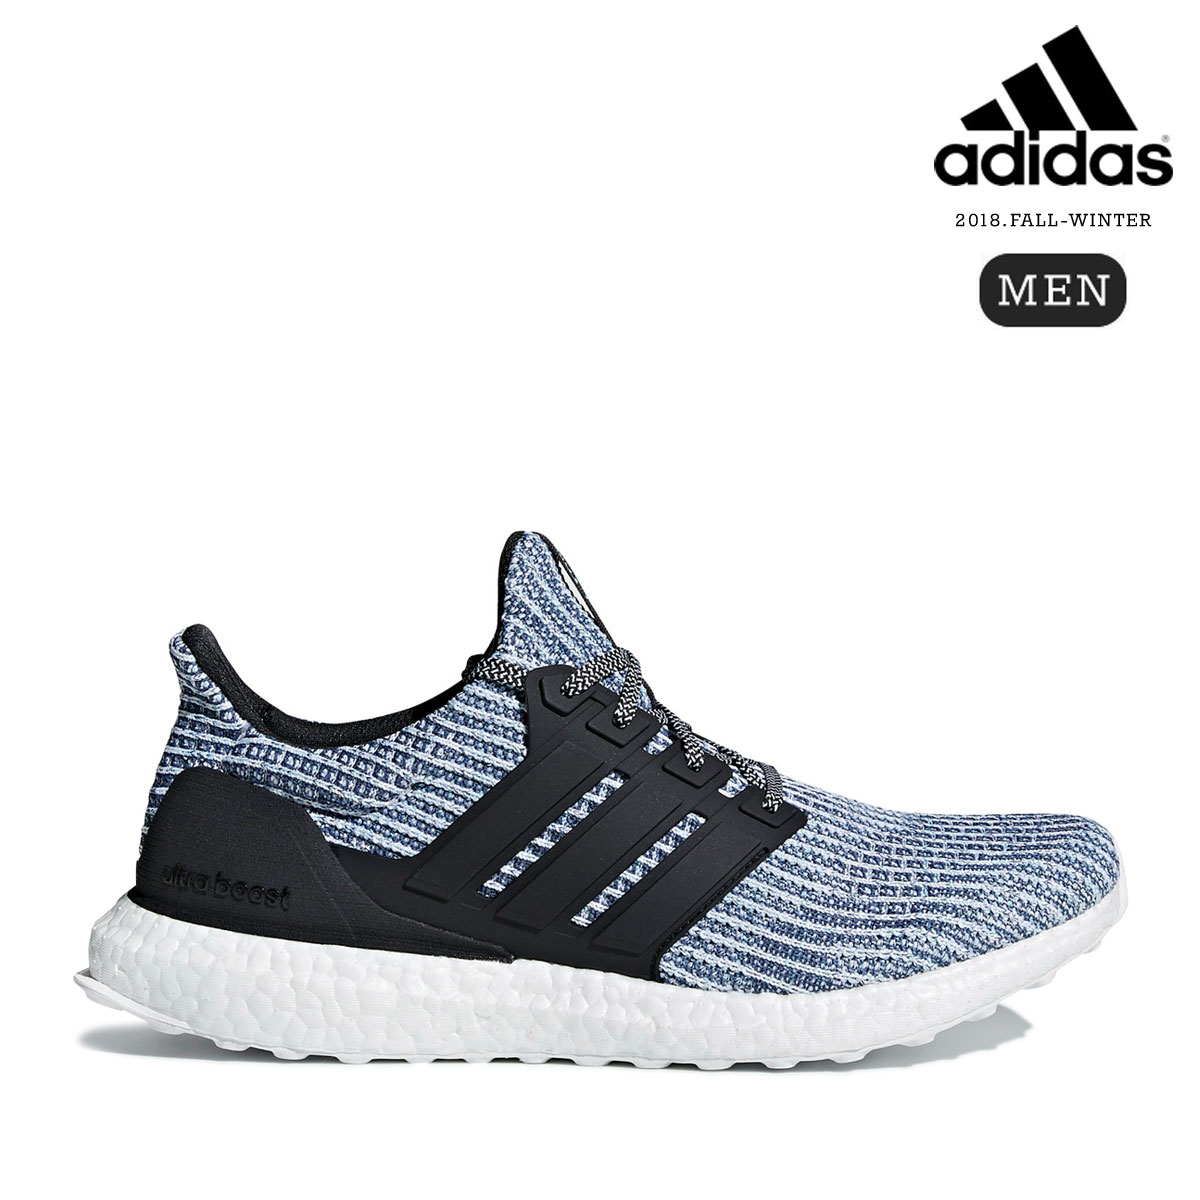 adidas UltraBOOST Parley (Running White/Carbon/Blue Spirit) 【メンズサイズ】【18FW-I】